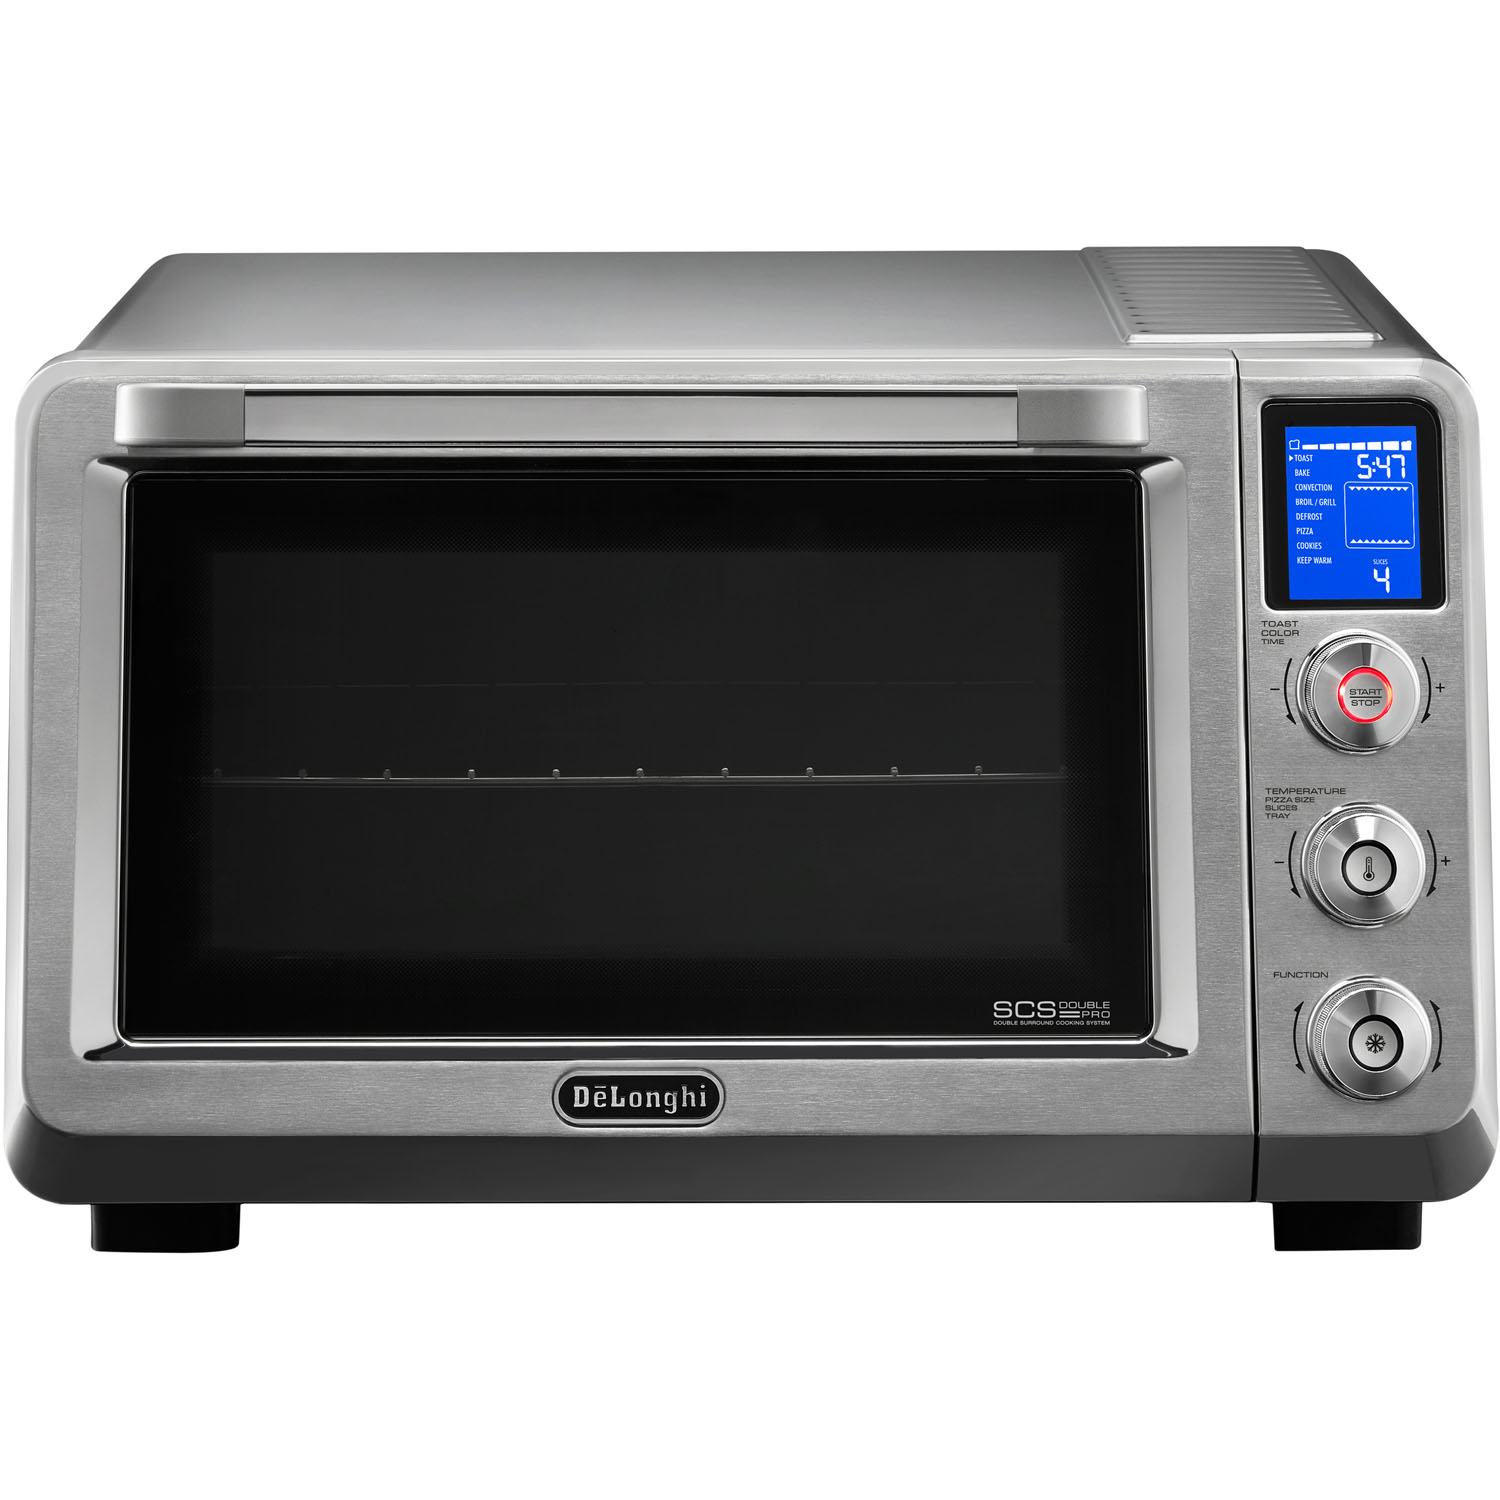 DeLonghi Livenza Convection Oven with Double Surround Cooking and 1 Rack